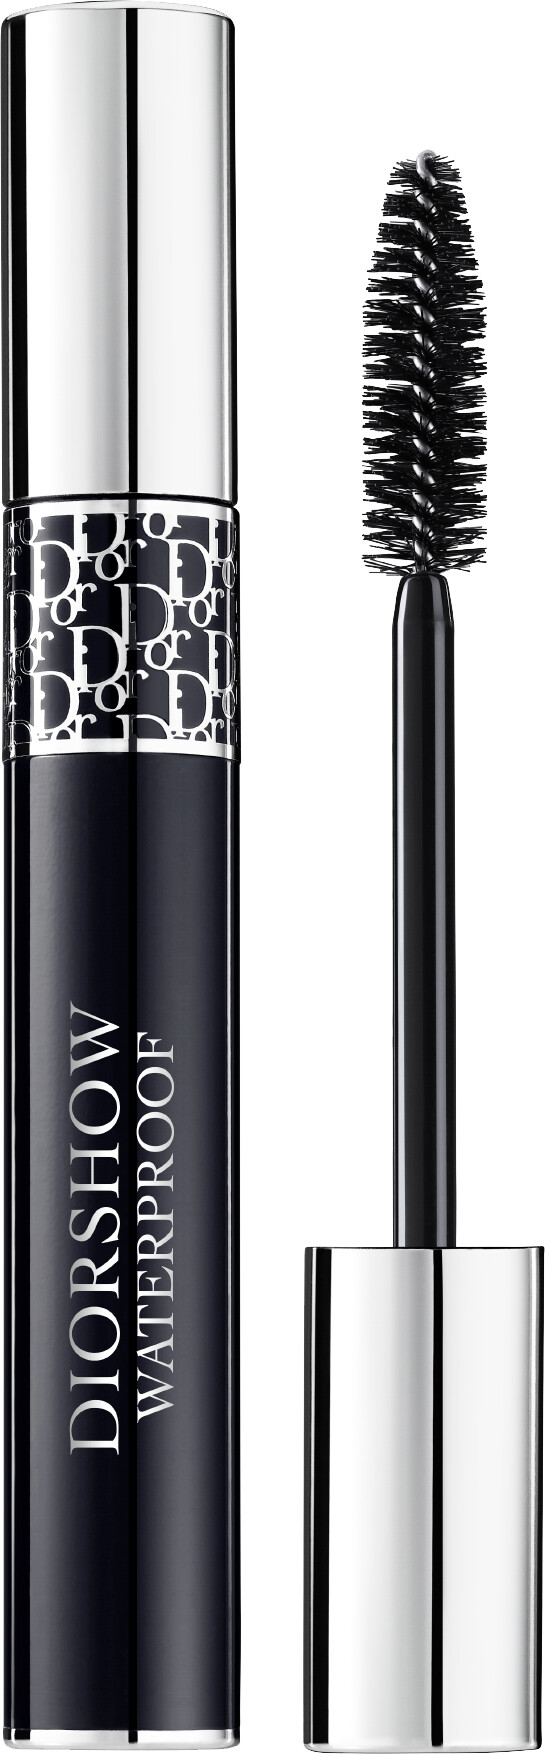 dior diorshow buildable volume mascara review